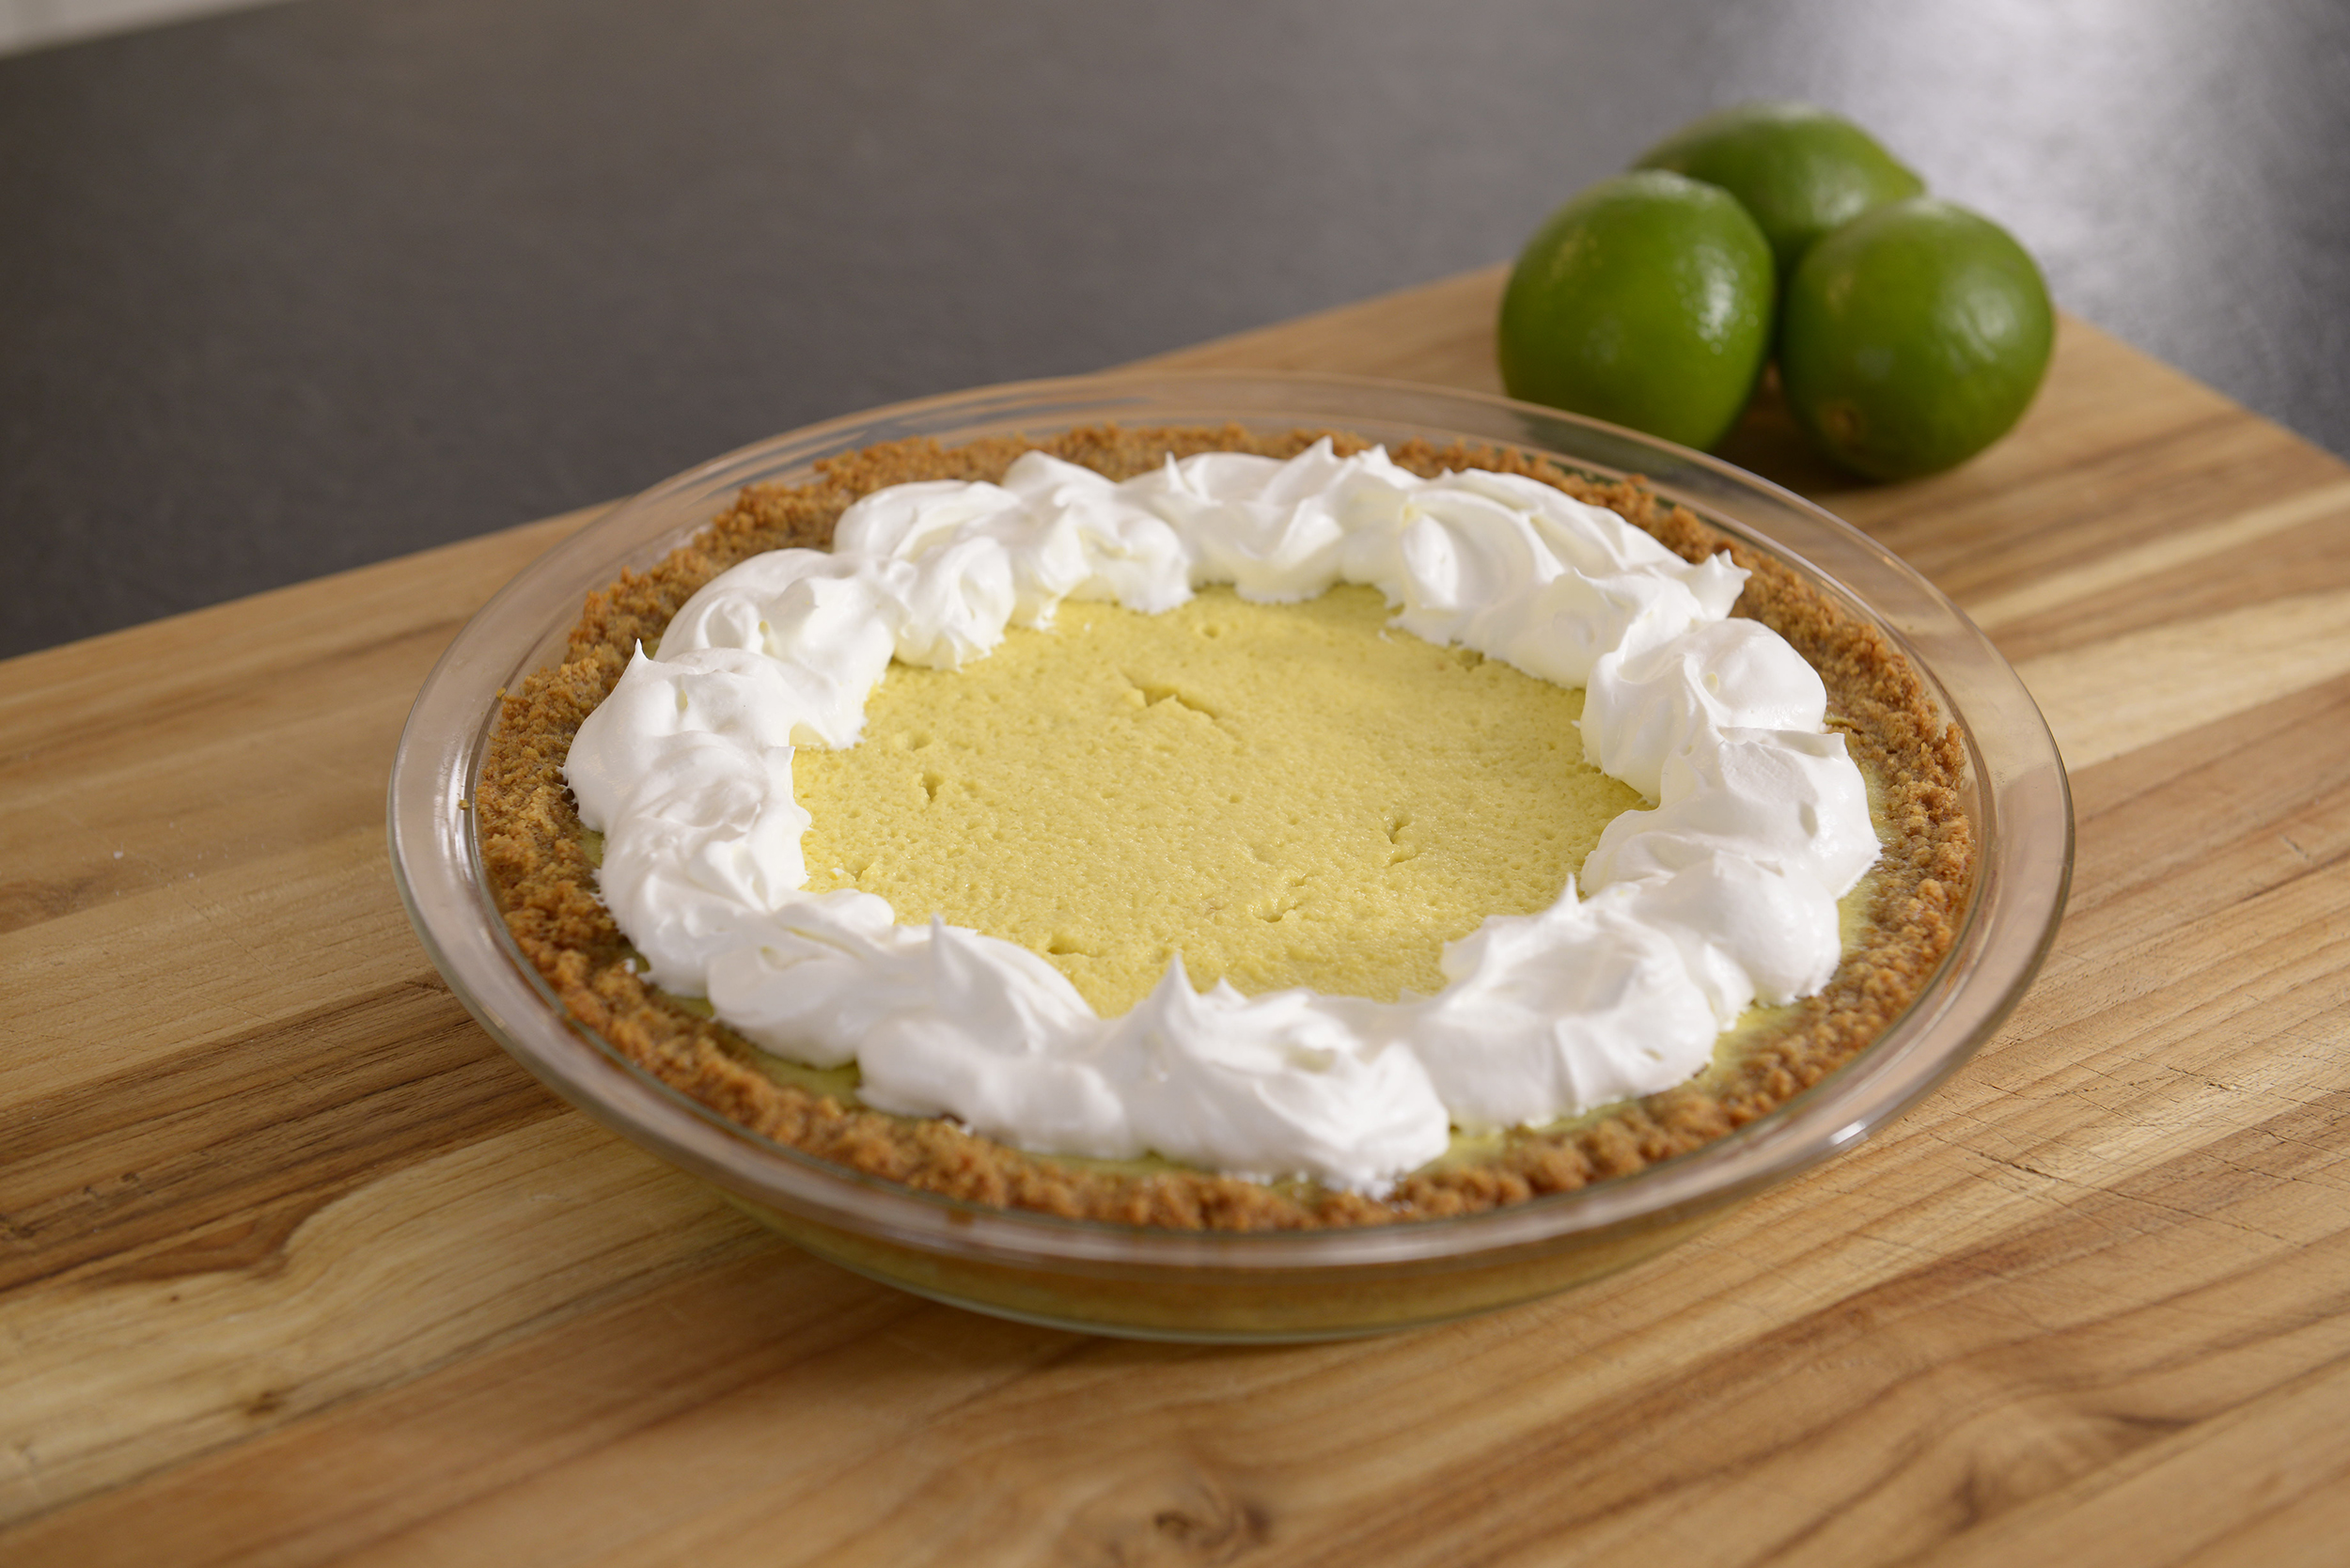 Bake a deliciously creamy Key lime pie - TODAY.com